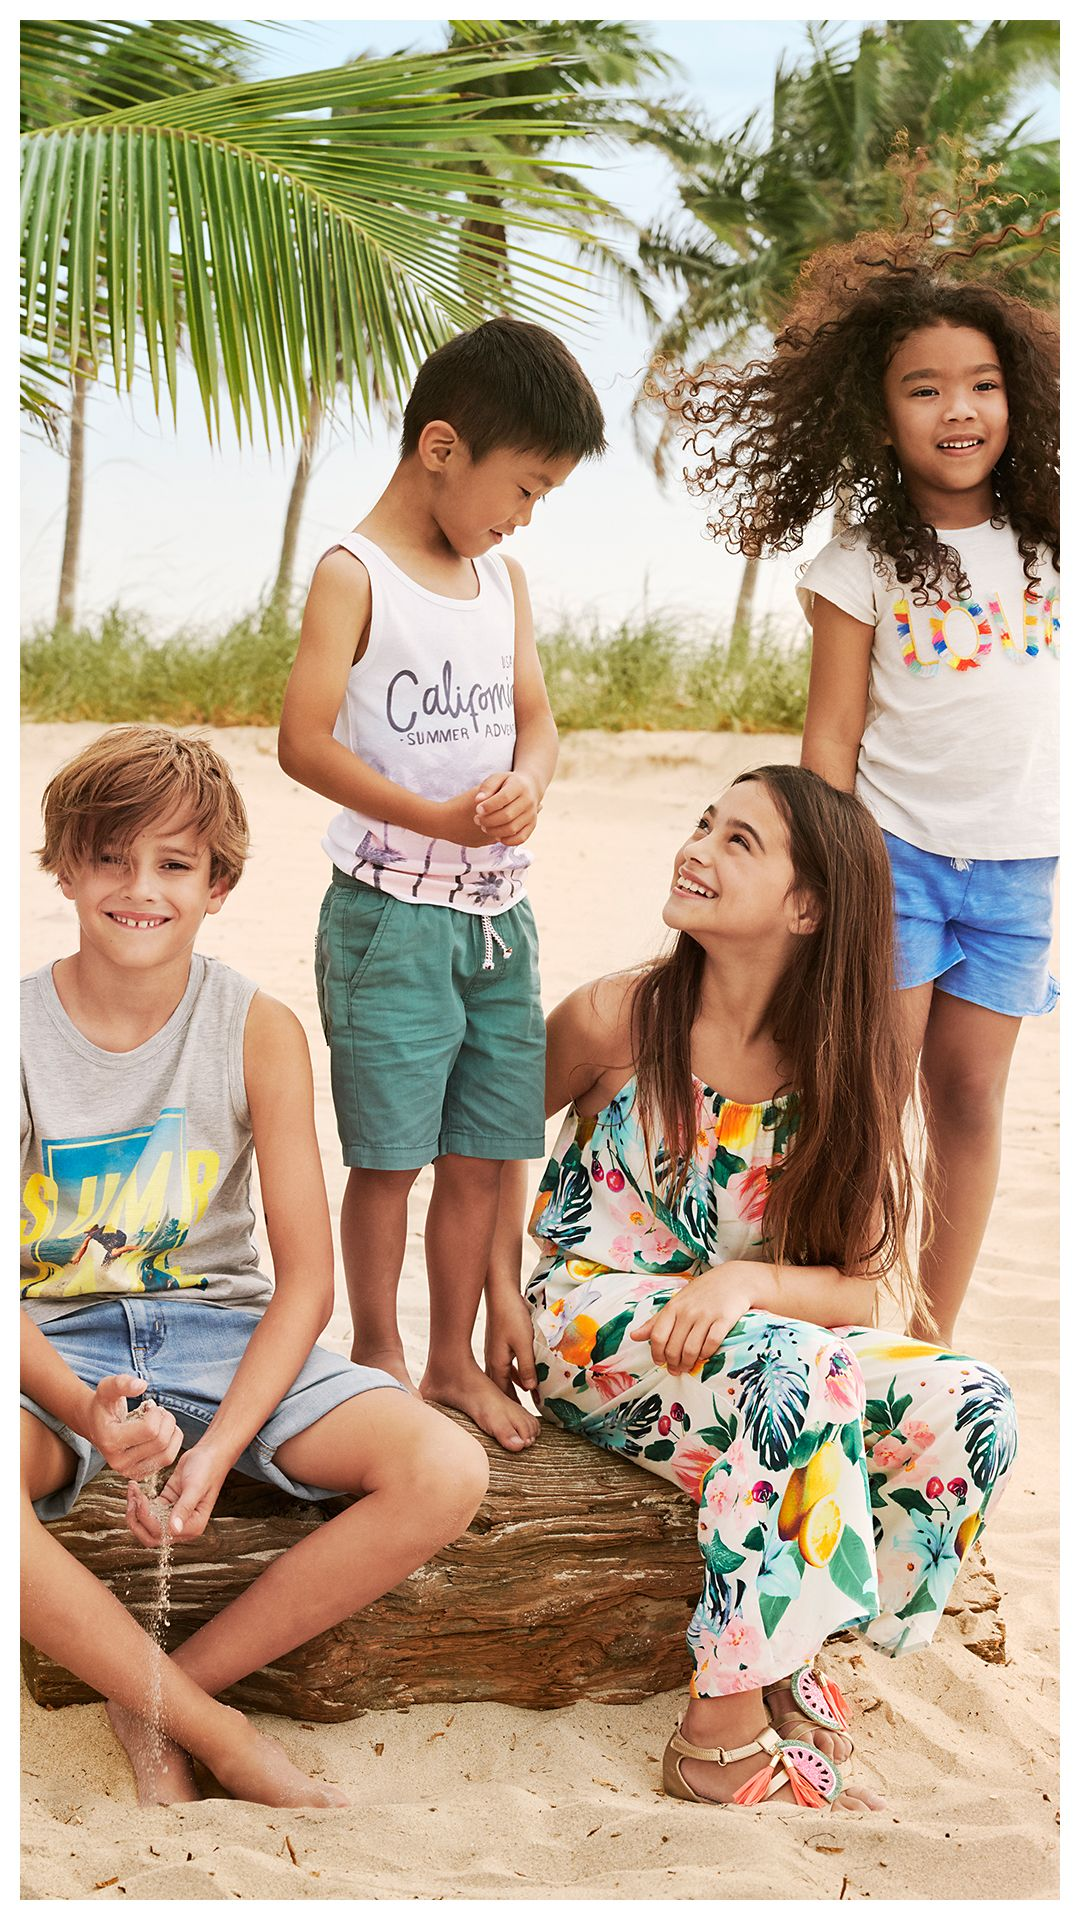 Stock Up On Fun And Fresh Fashion Favorites For Lazy Days And Sunny Skies H M Kids Boys Summer Fashion Kids Summer Fashion Tween Outfits